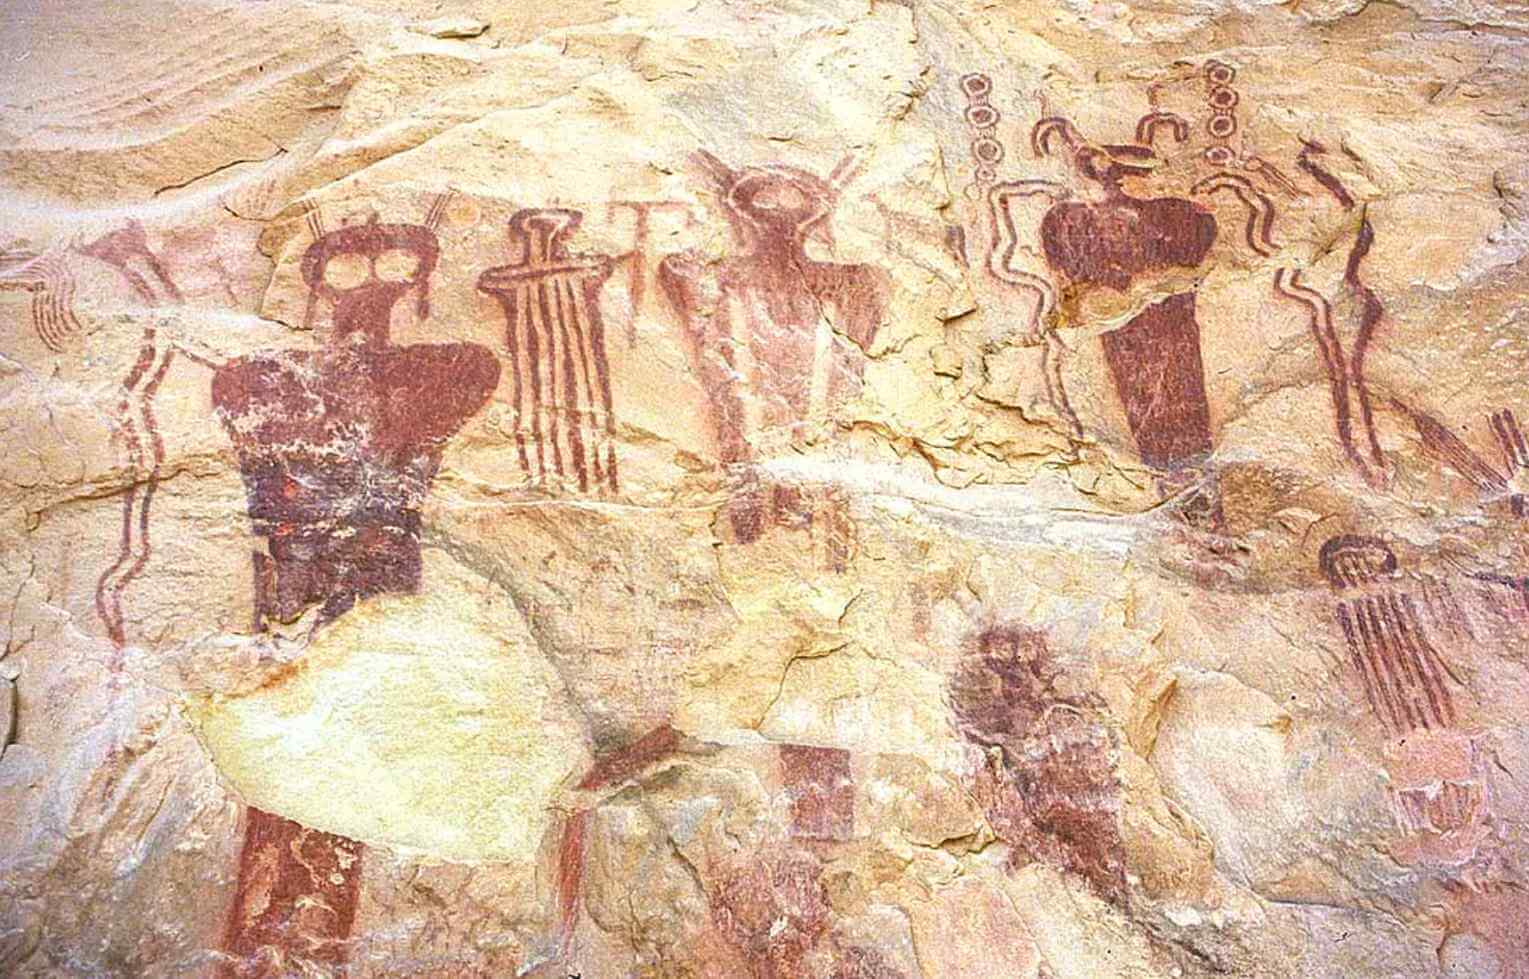 Visual Evidences of Higher Intelligence from Antiquity. we see strange shapes around them, these could depict something primitive man could not comprehend. Perhaps a UFO?